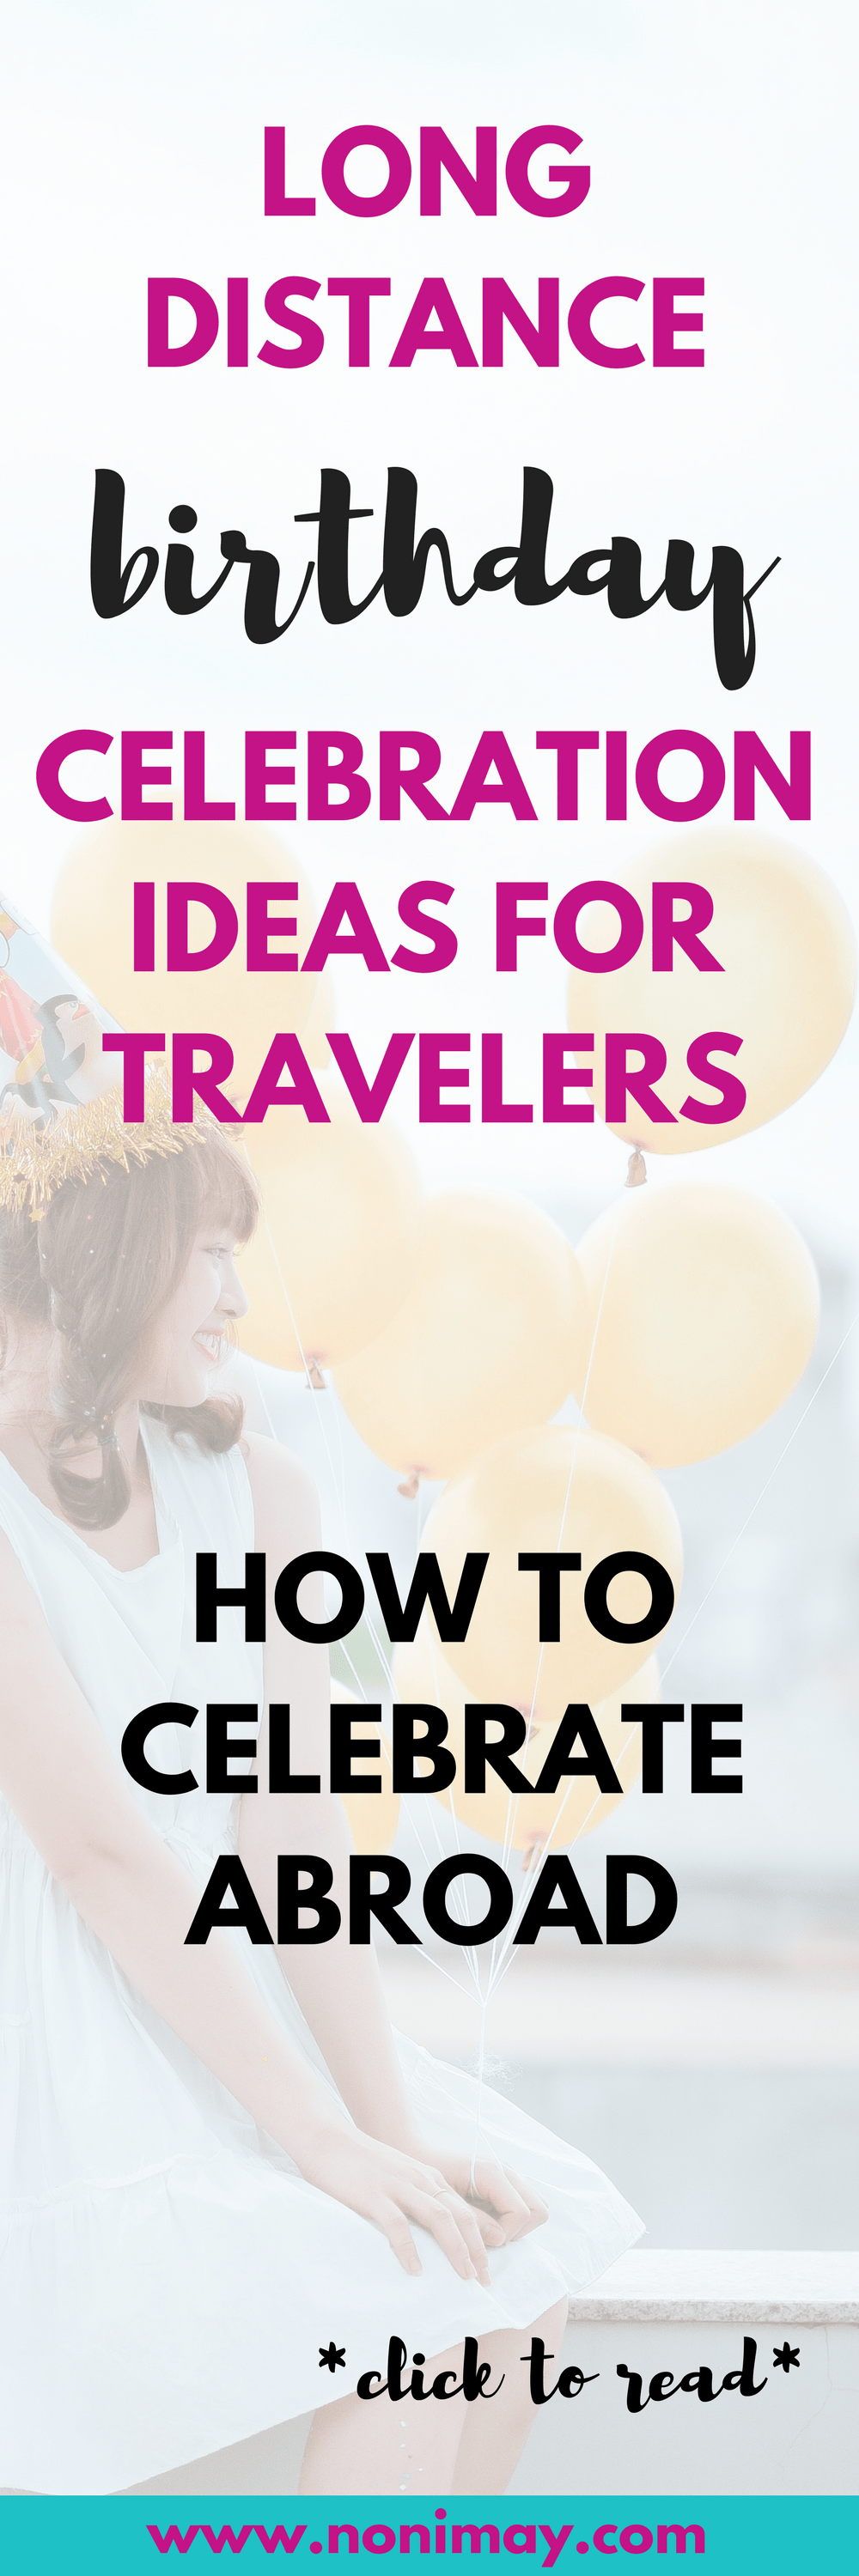 Long distance birthday celebration ideas for travelers